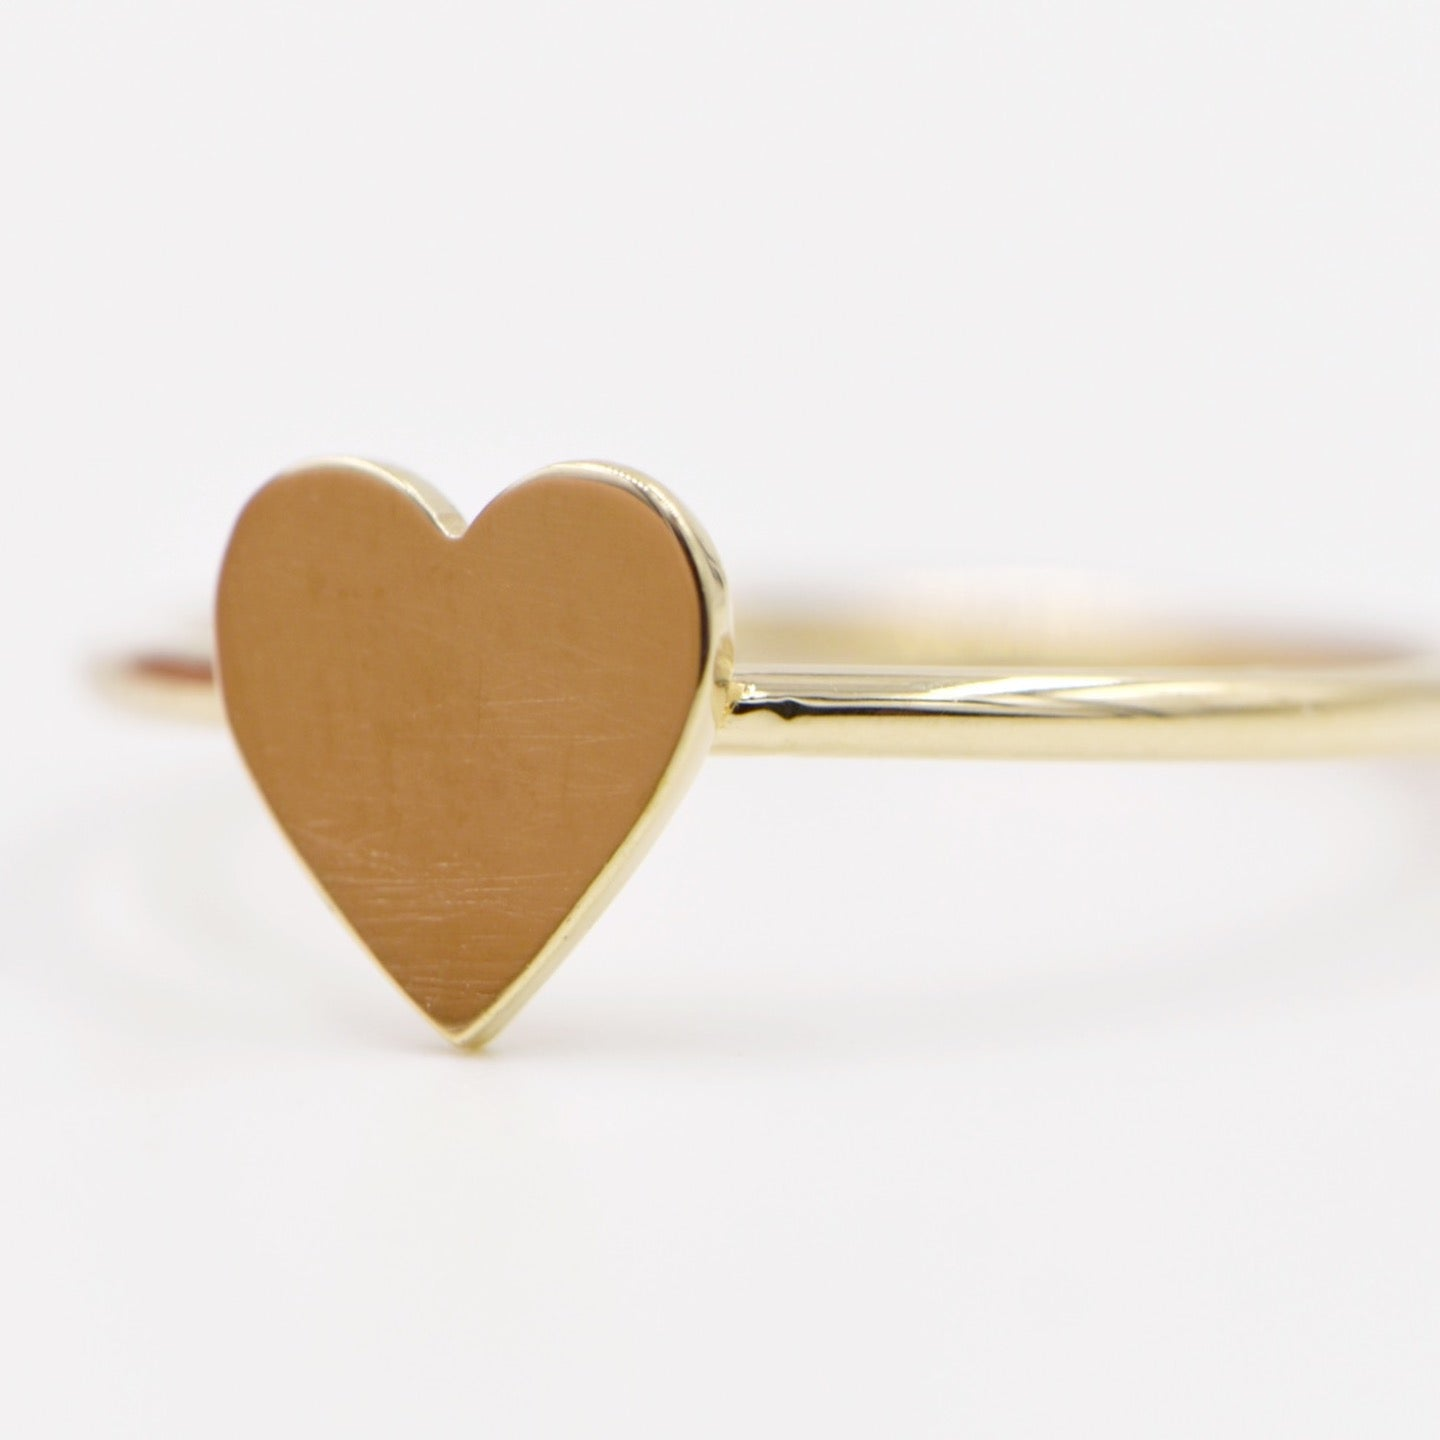 Heart of 14k Gold Ring